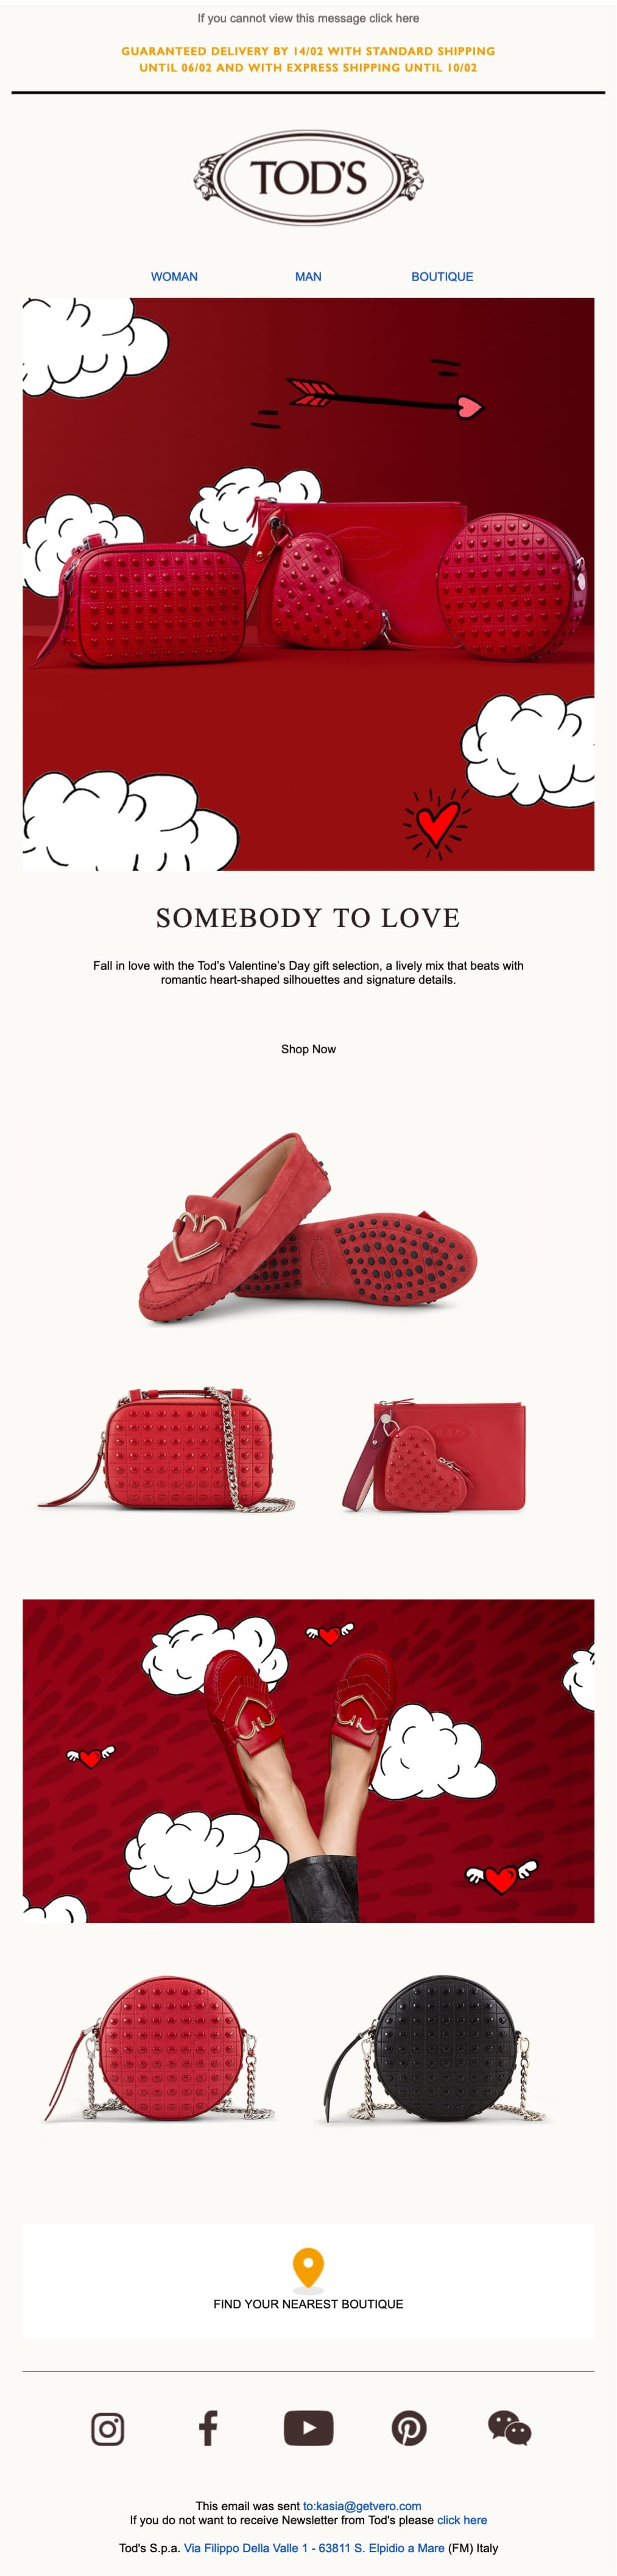 promotional email example tods (holiday offer)